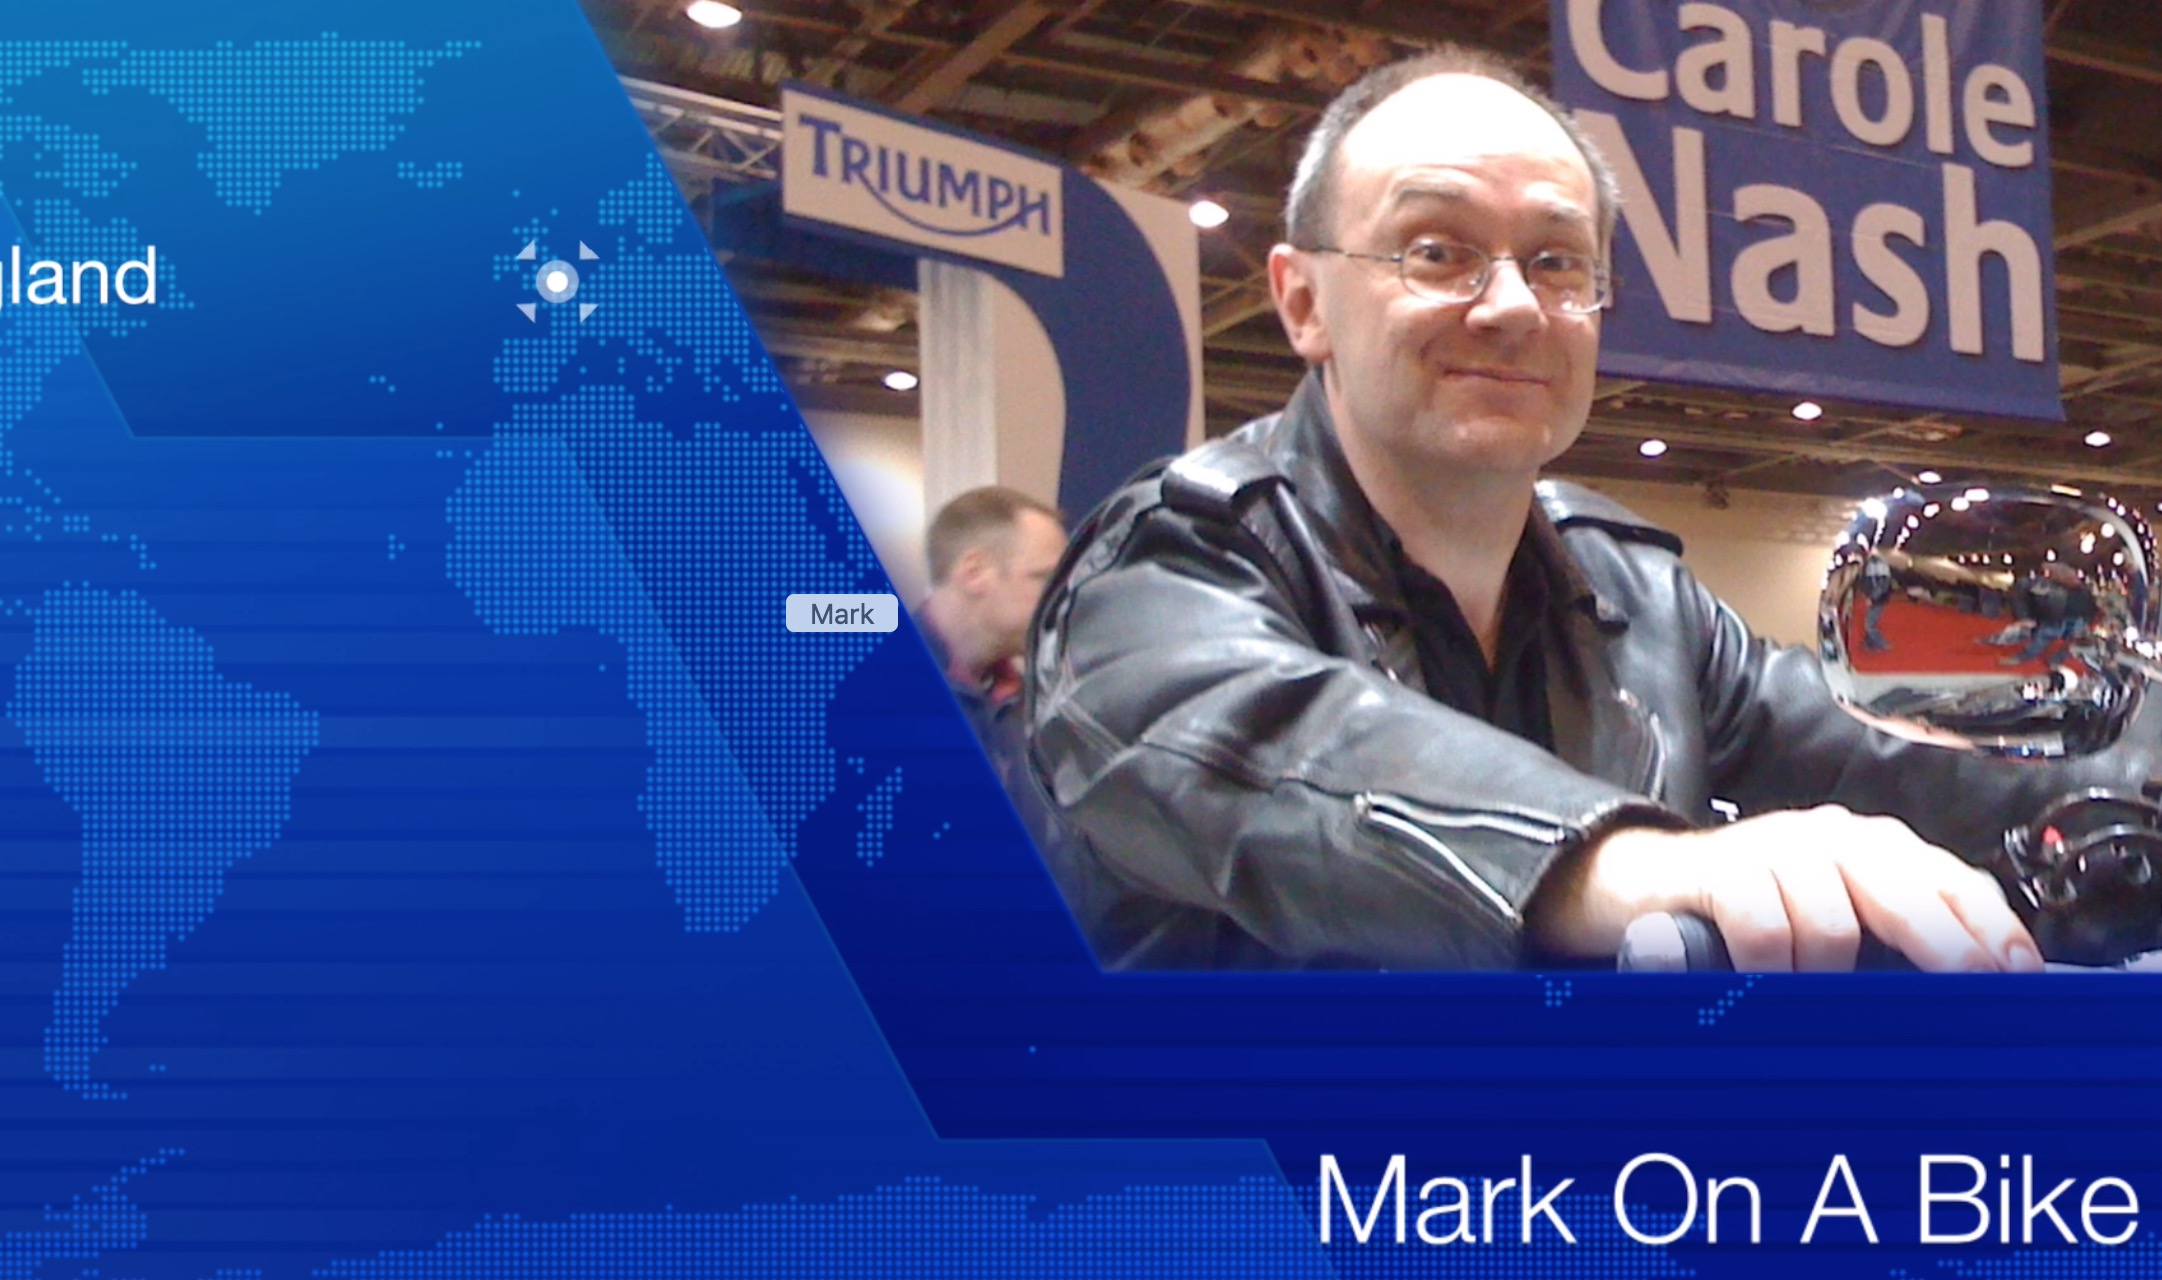 The title card from my short video entitled Mark On A Bike showing a still shot from the video title sequence showing a close up of Mark on a cruiser style motorcycle in his leather jacket with blue title graphics.